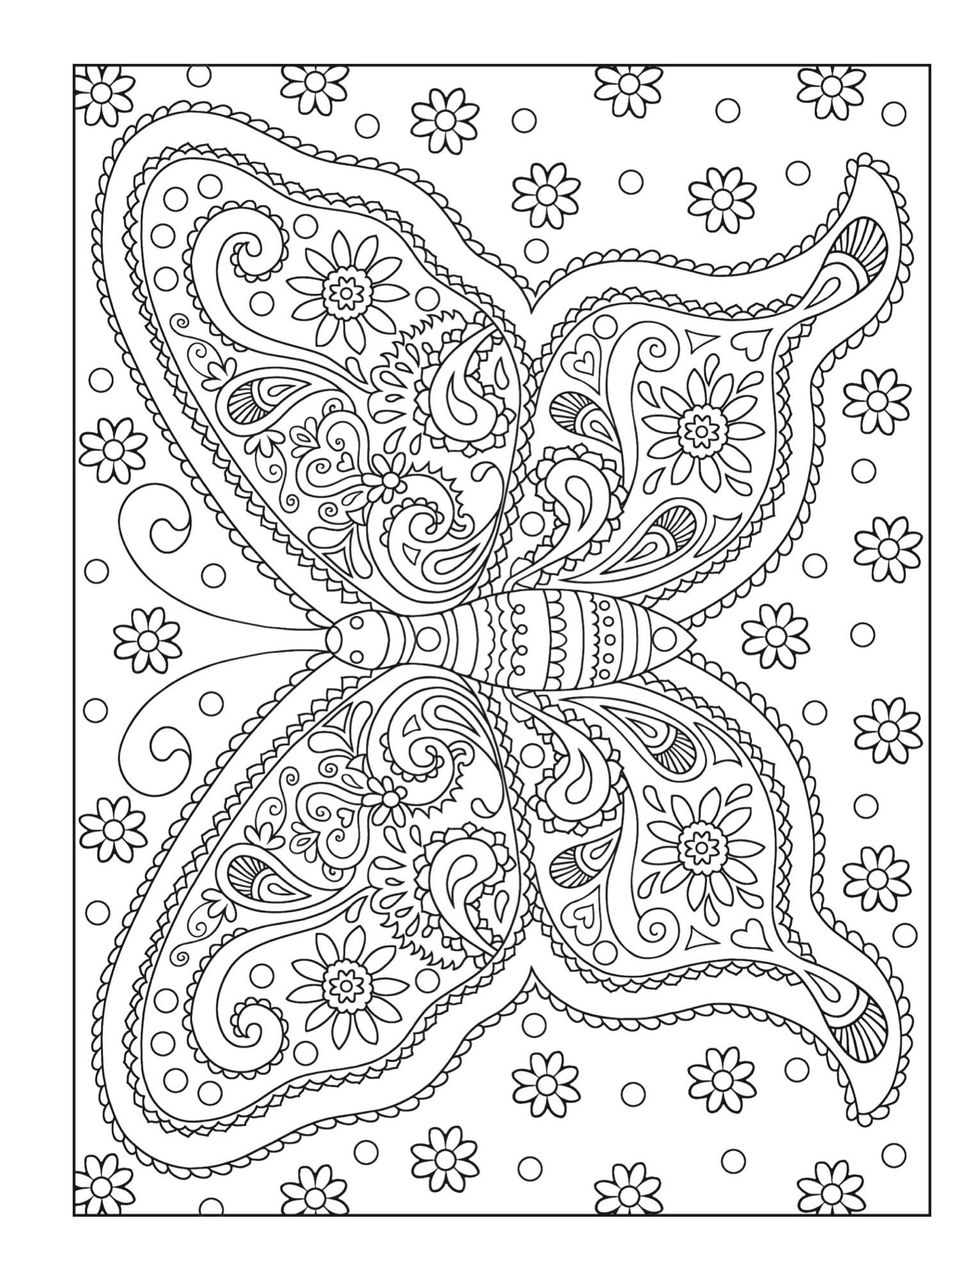 South korea coloring book - Adult Coloring Books